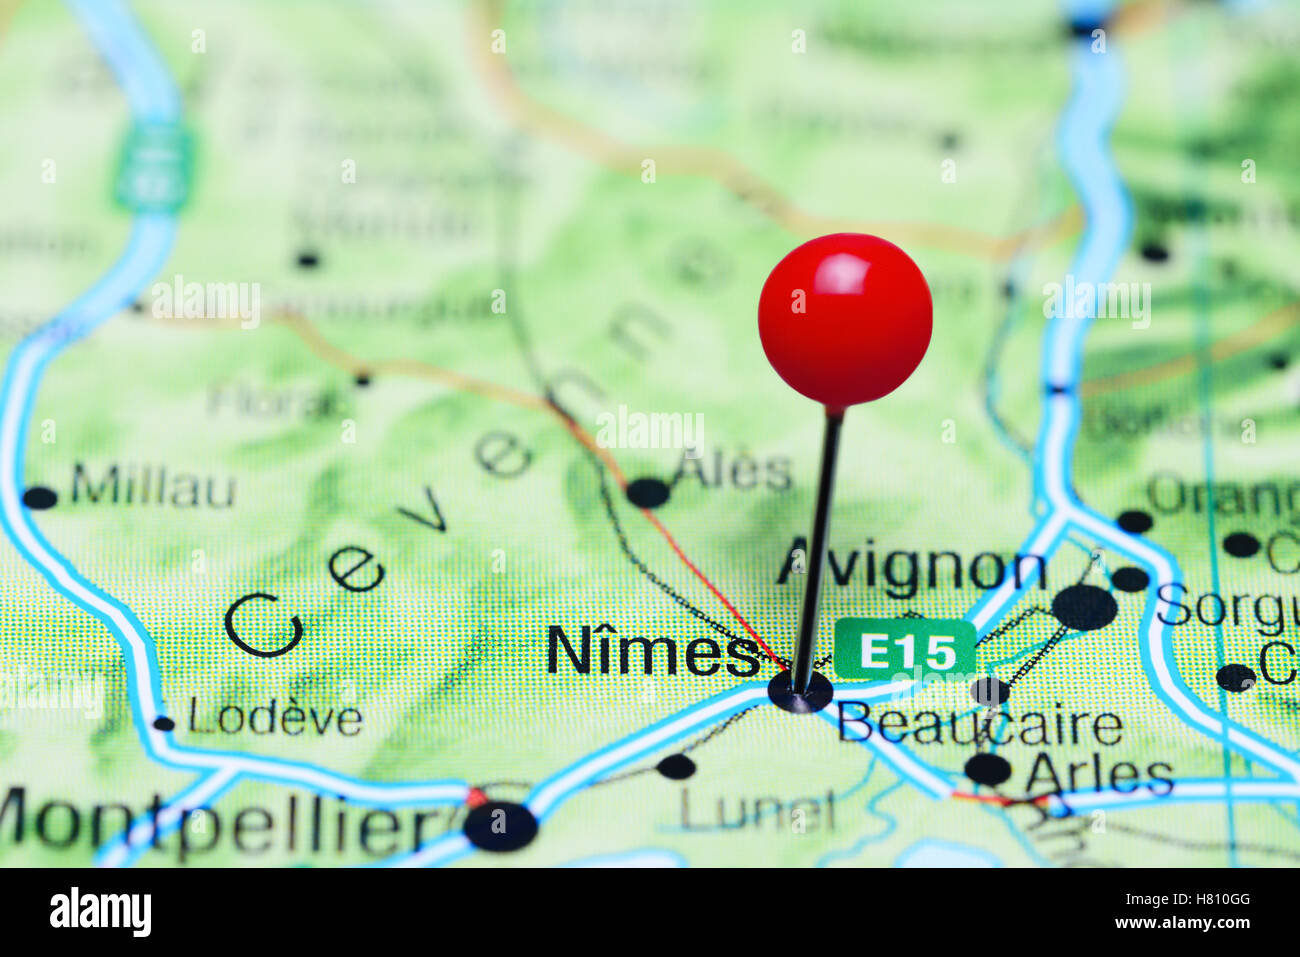 Nimes Pinned On A Map Of France Stock Photo 125412240 Alamy